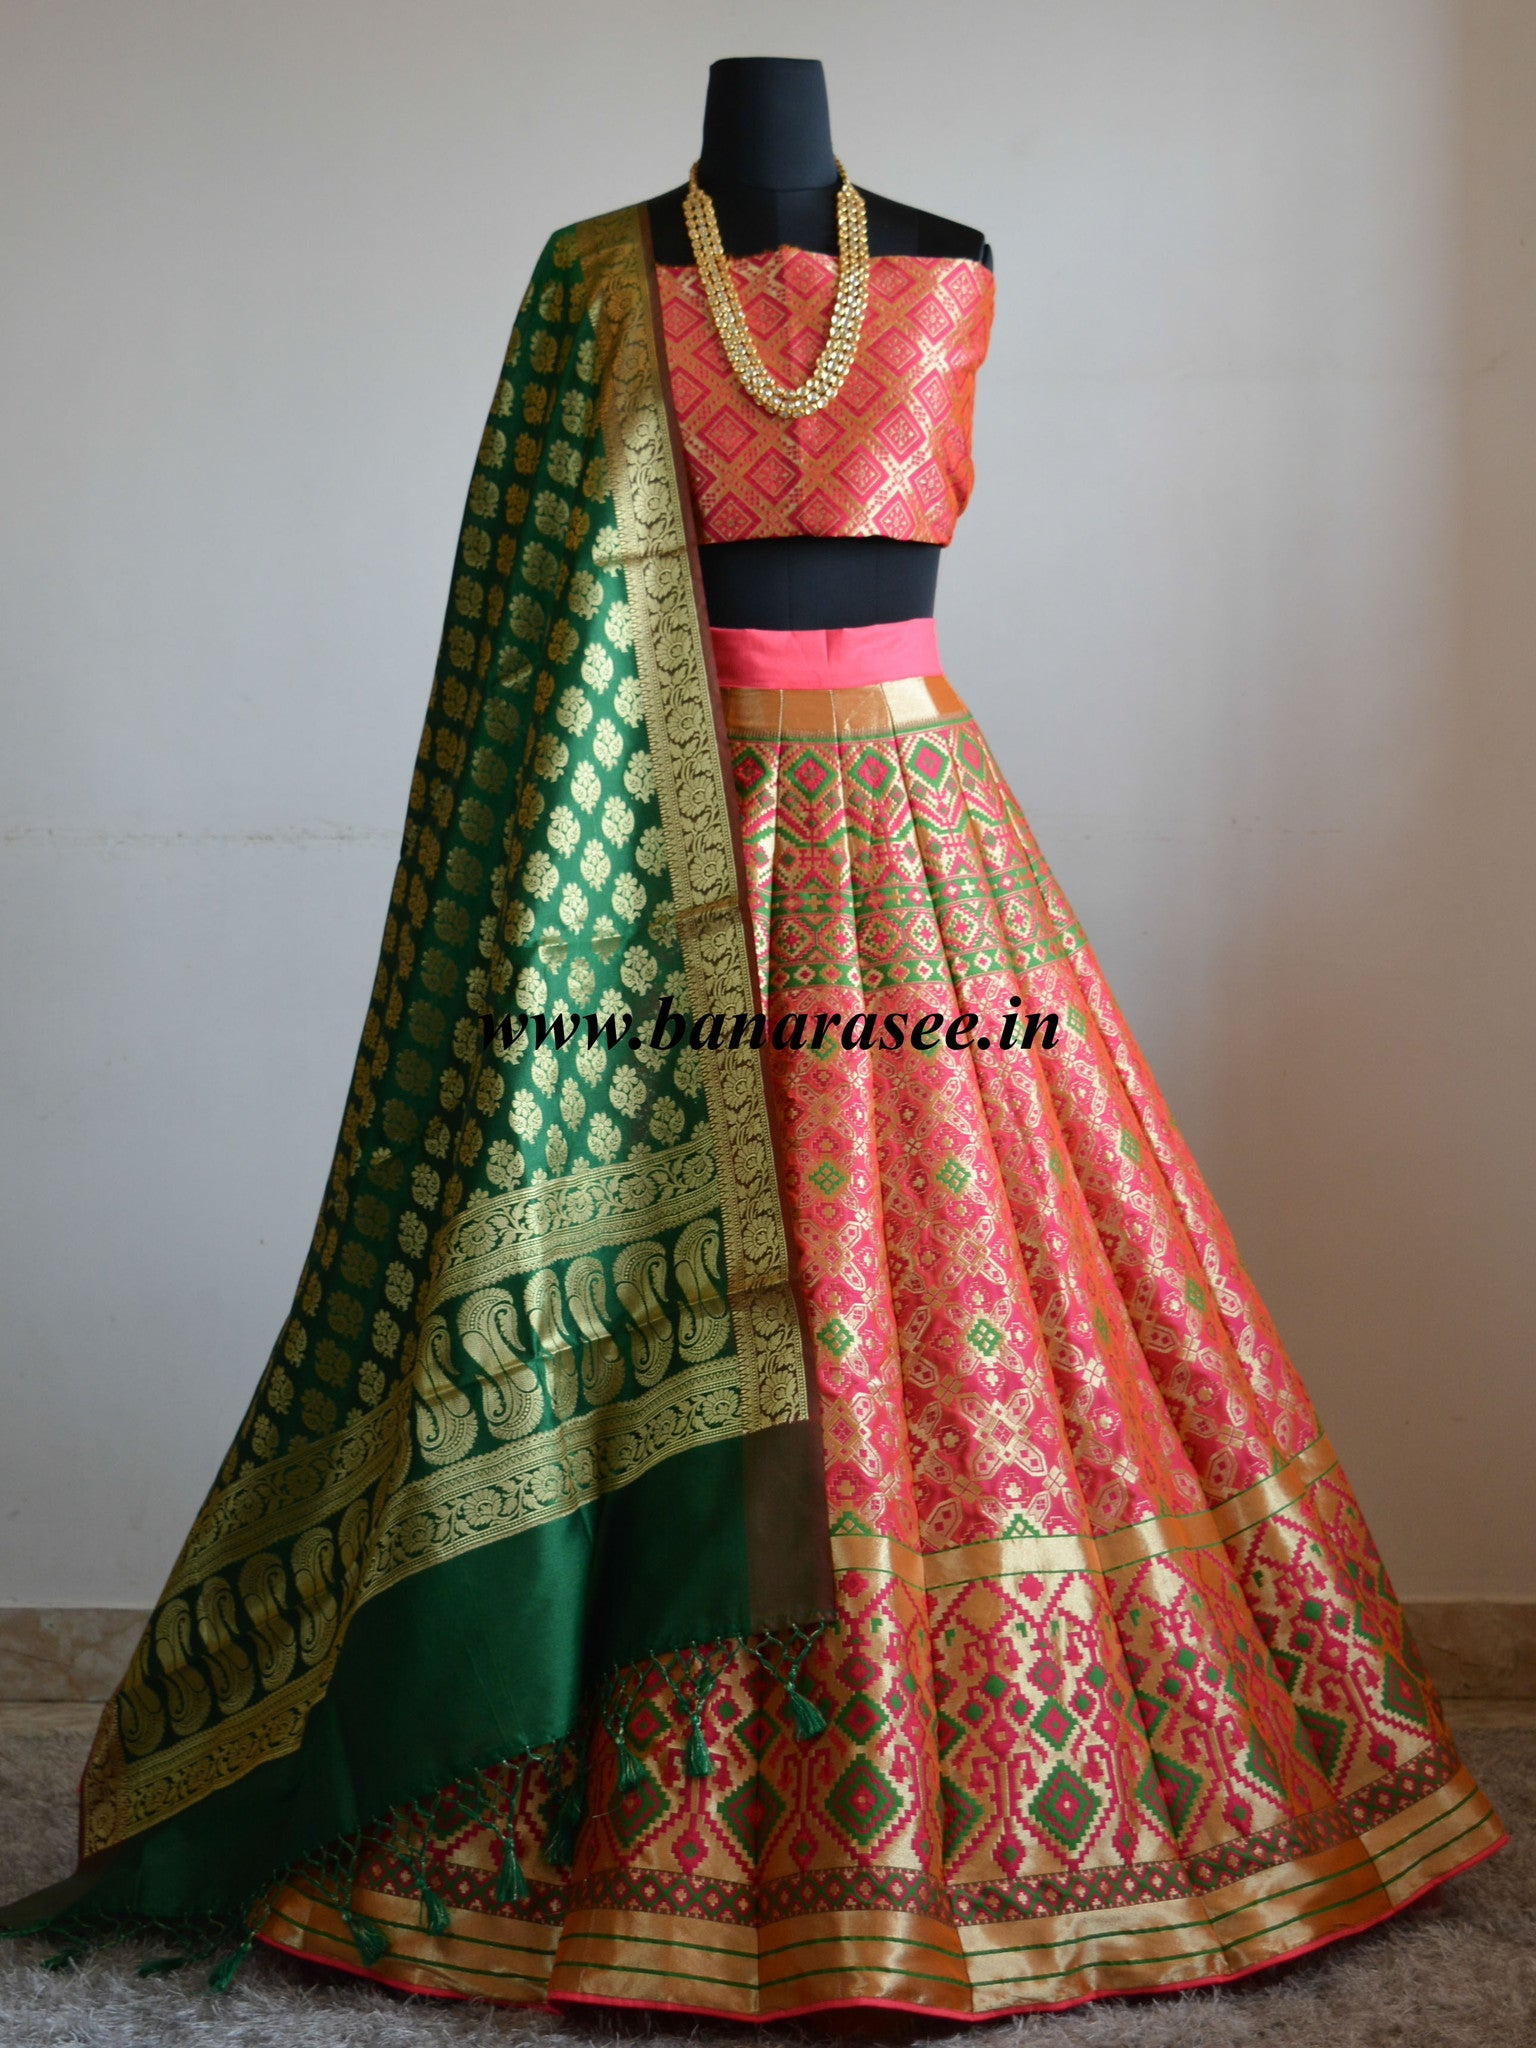 22bde3100 Banarasee Handwoven Art Silk Unstitched Lehenga & Blouse Fabric With Meena  Work -Bright Peach